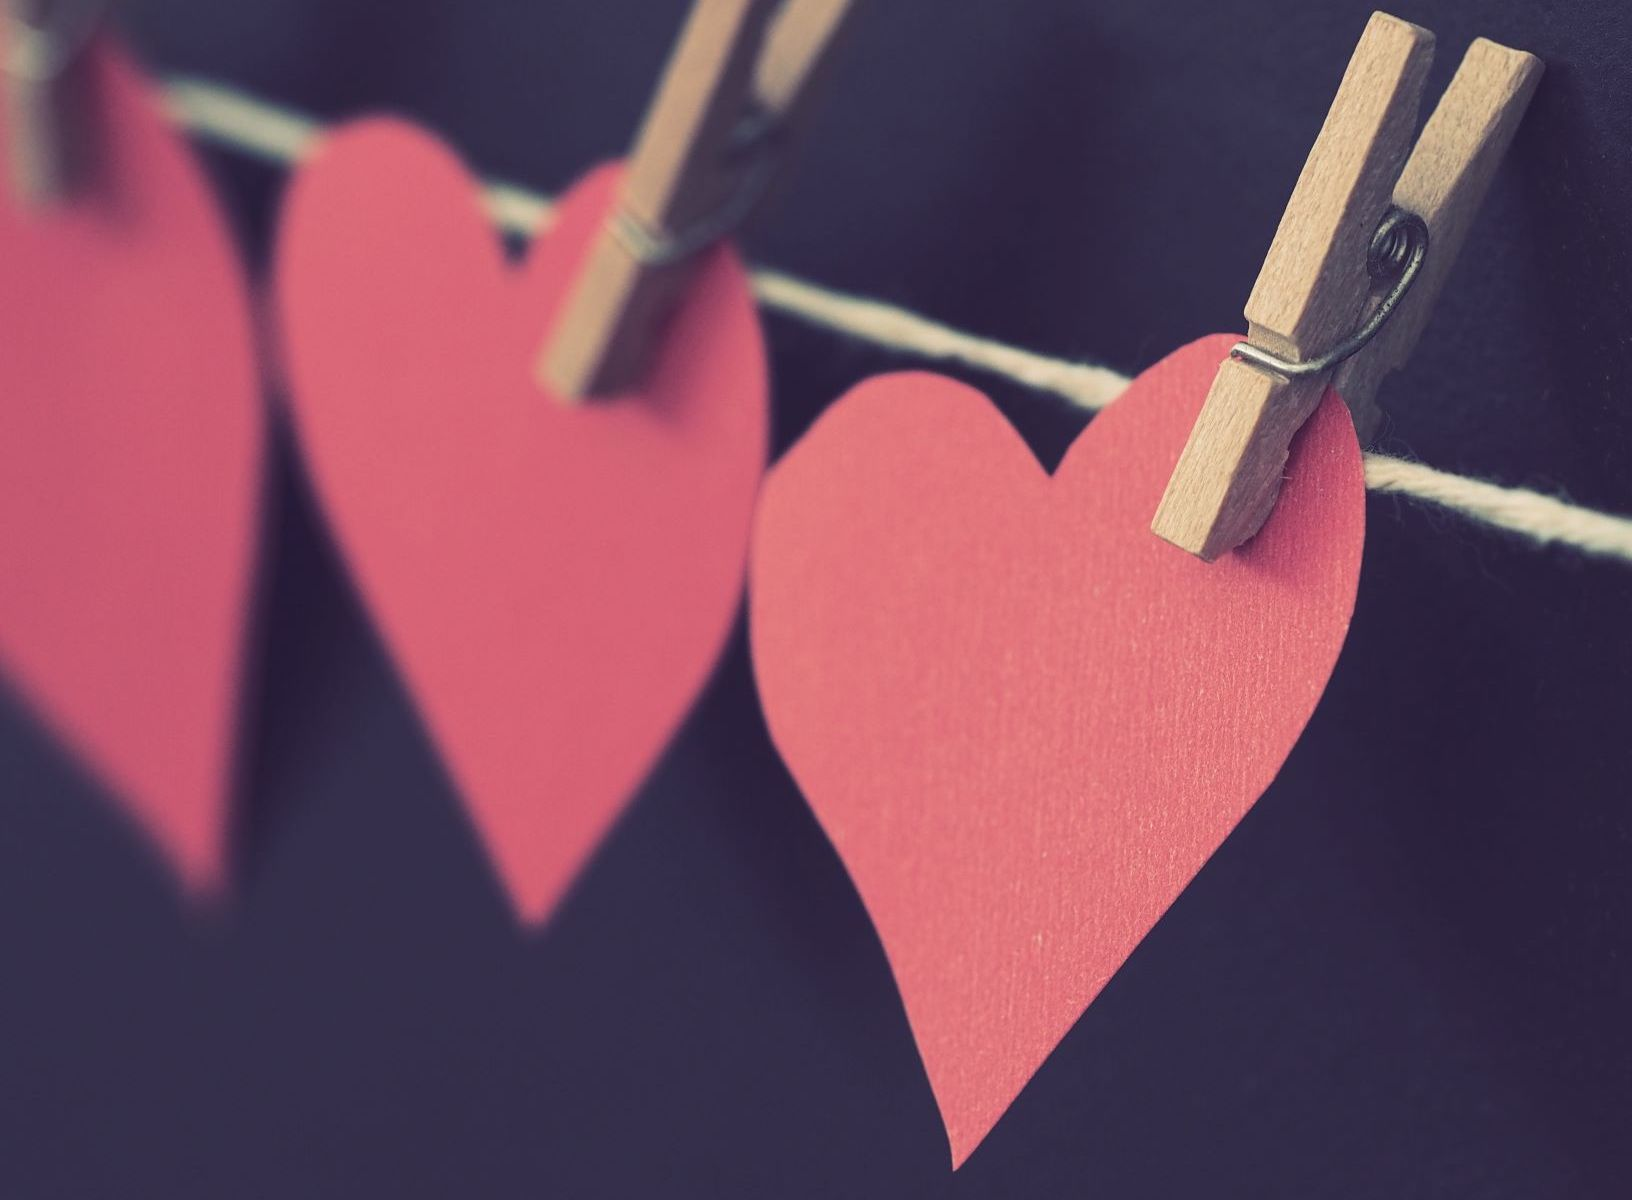 A Valentine's Letter - Early miscarriage